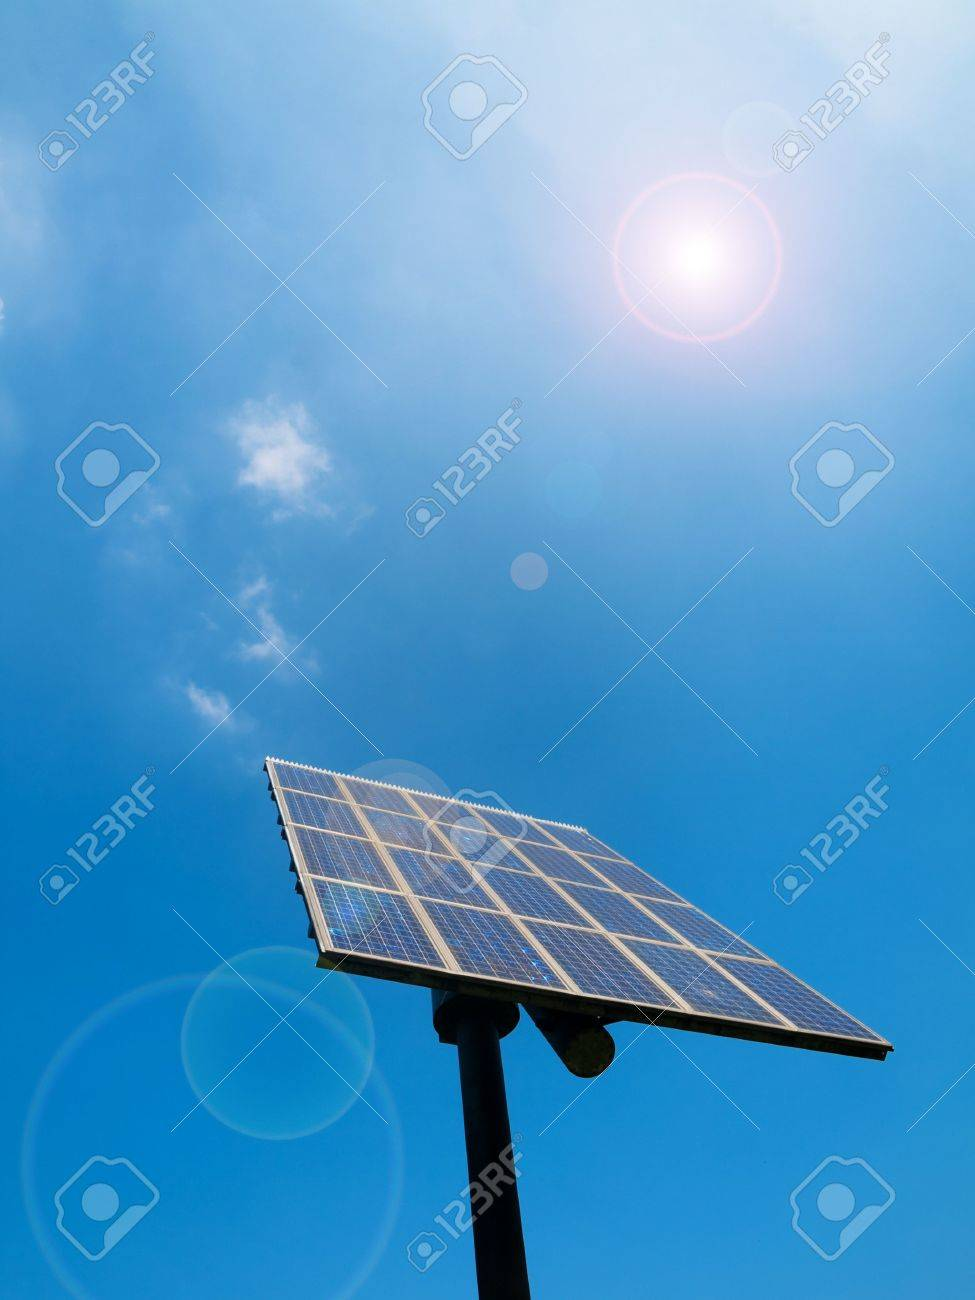 Solar panel under blue sky with sun flare Stock Photo - 5123122